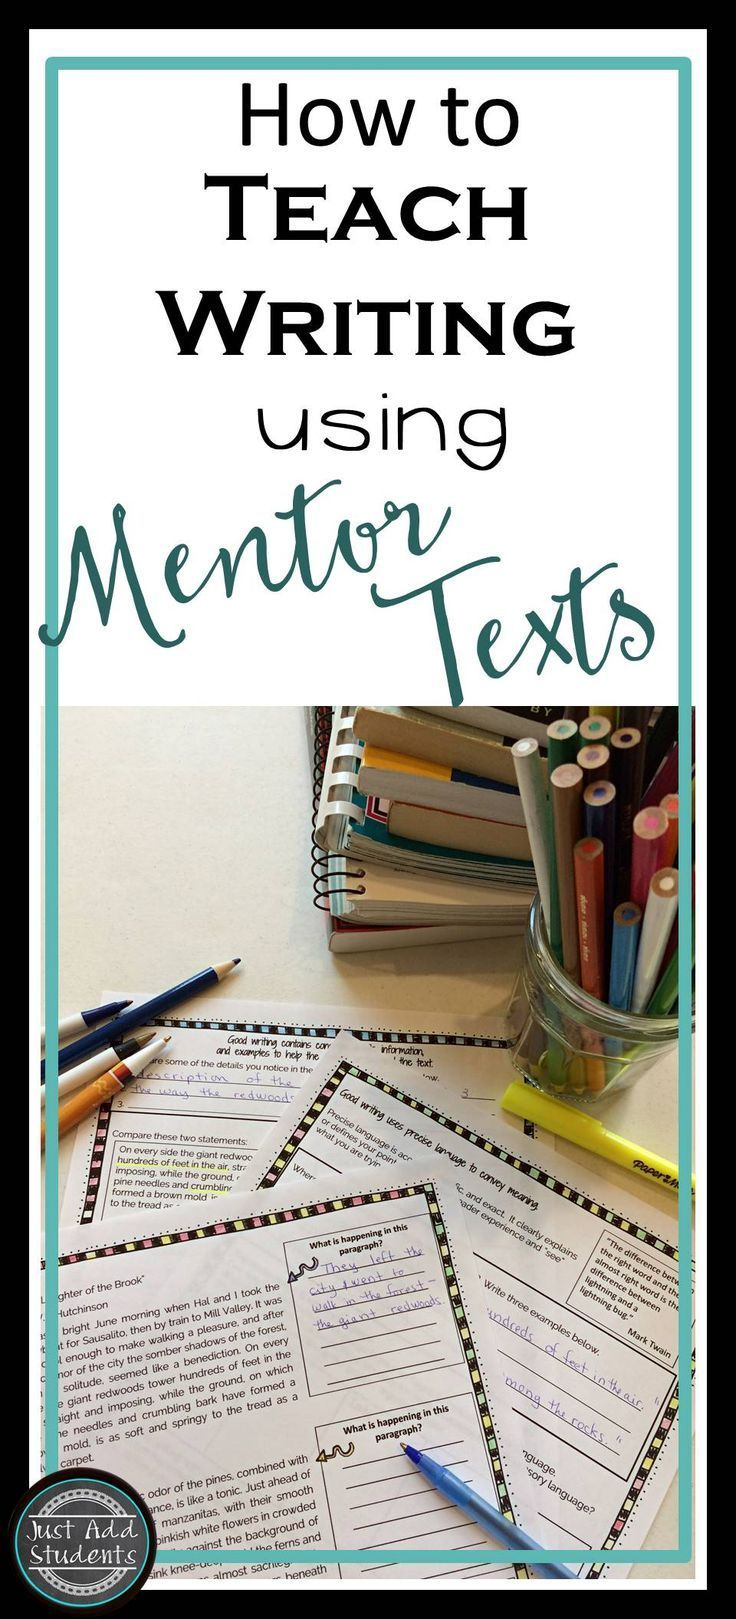 best writing lessons ideas writing lesson plans use mentor texts to show students what good writing is when students analyze texts